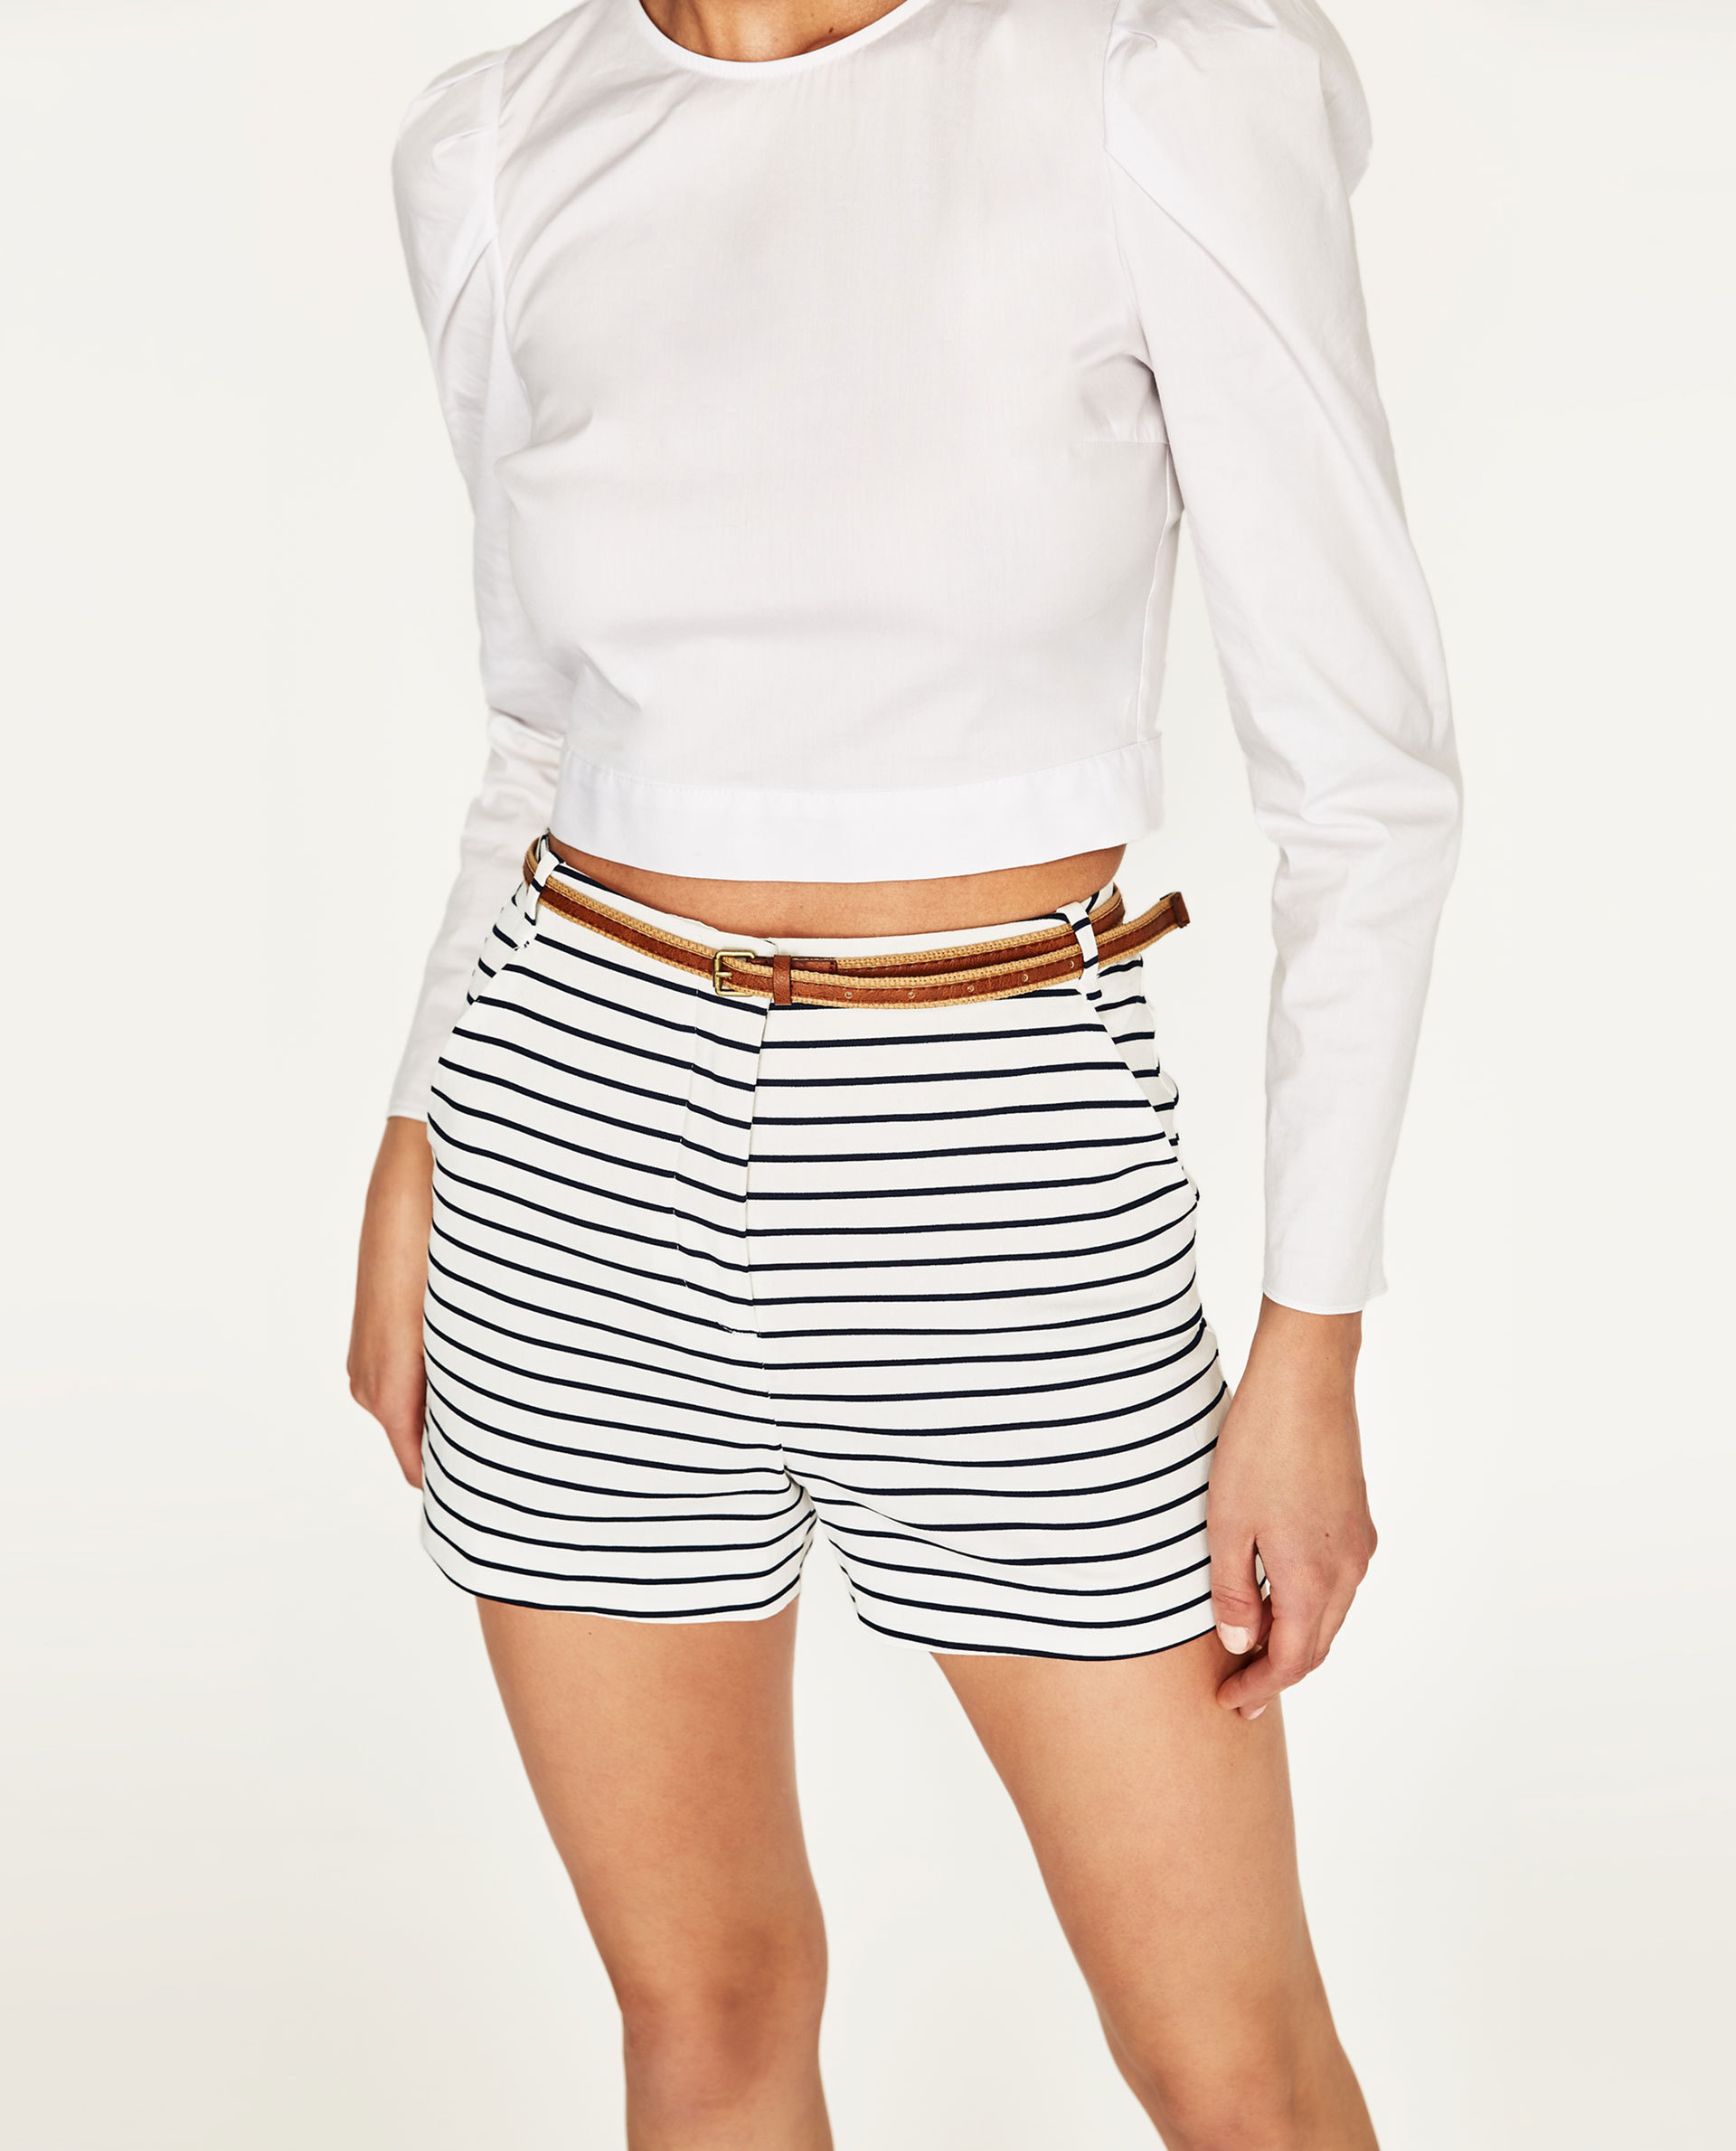 ●ZARA●秋新作♪STRIPED SHORTS WITH BELT